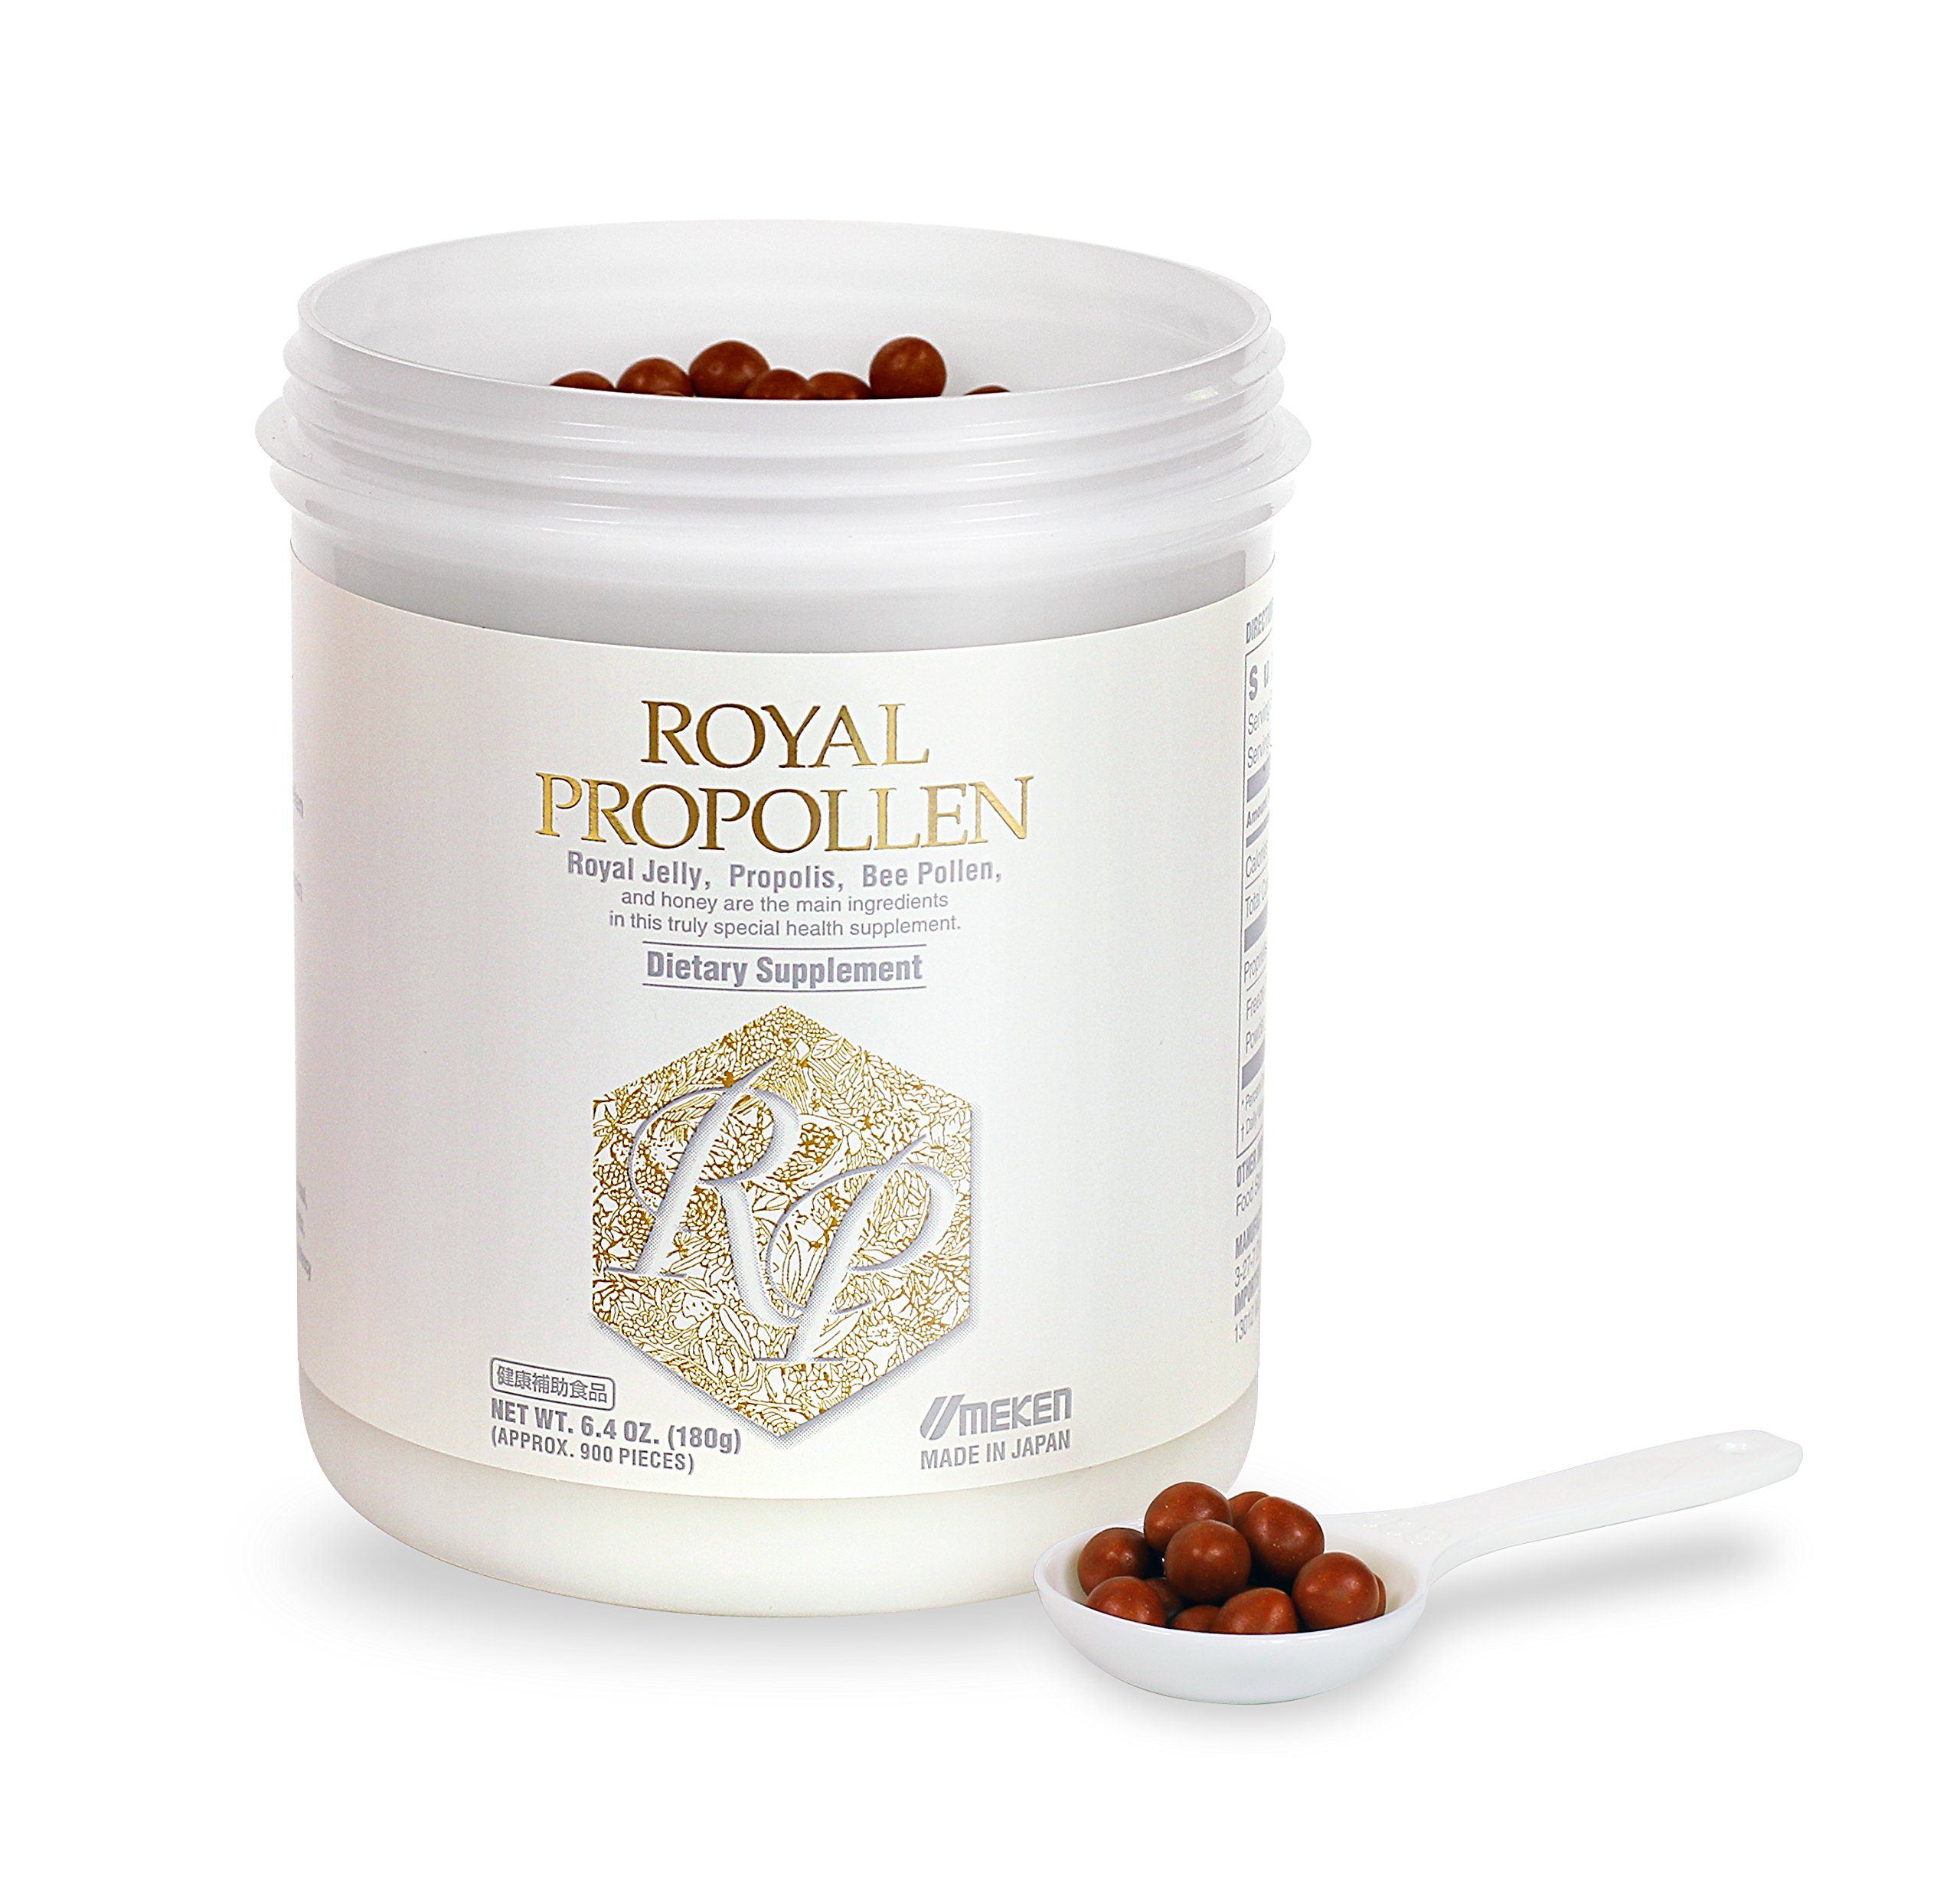 Umeken Royal Propollen- Contains Royal Jelly (10H2DA), Green Propolis, Bee Pollen derived from honey. Helps Boost Energy and Immune System. About a 2 month supply. Made in Japan.